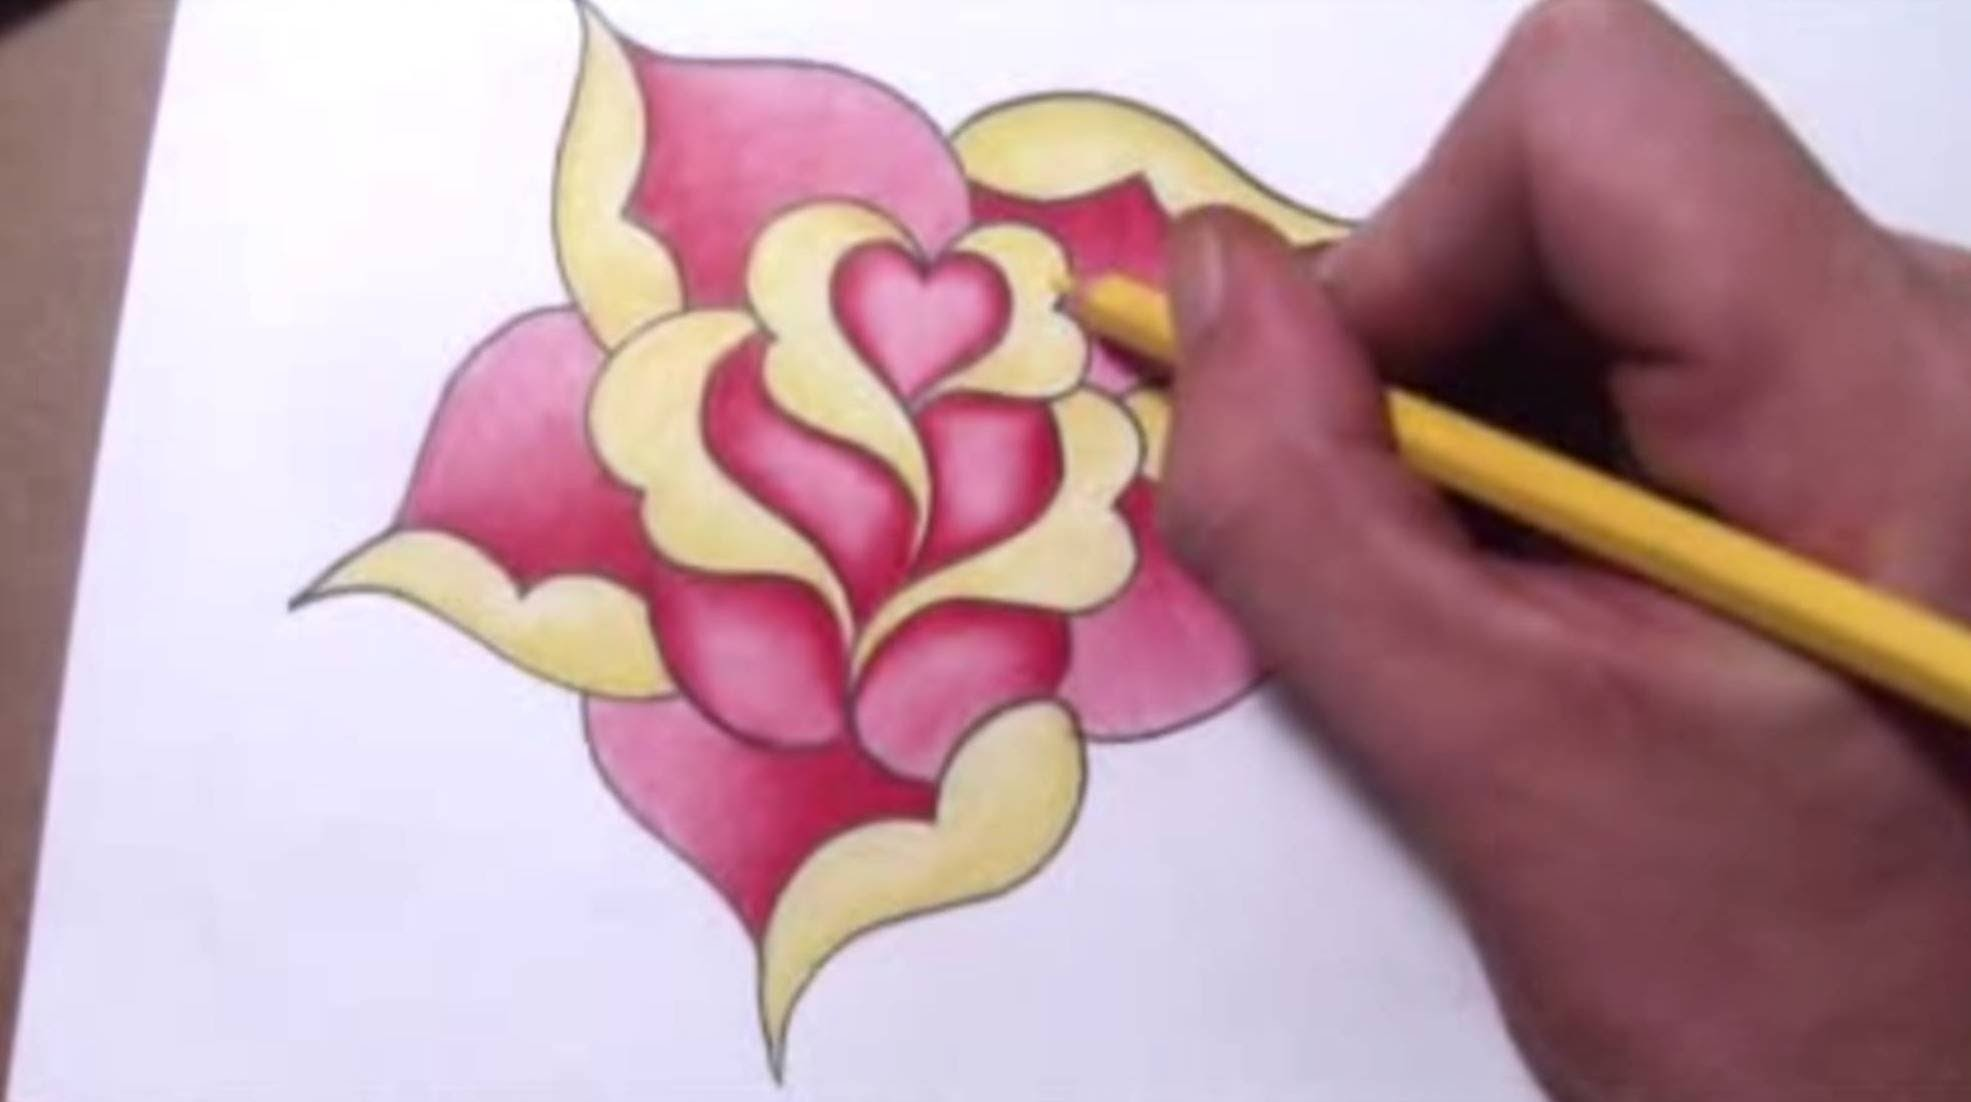 How To Draw a Simple Rose Design With a Heart